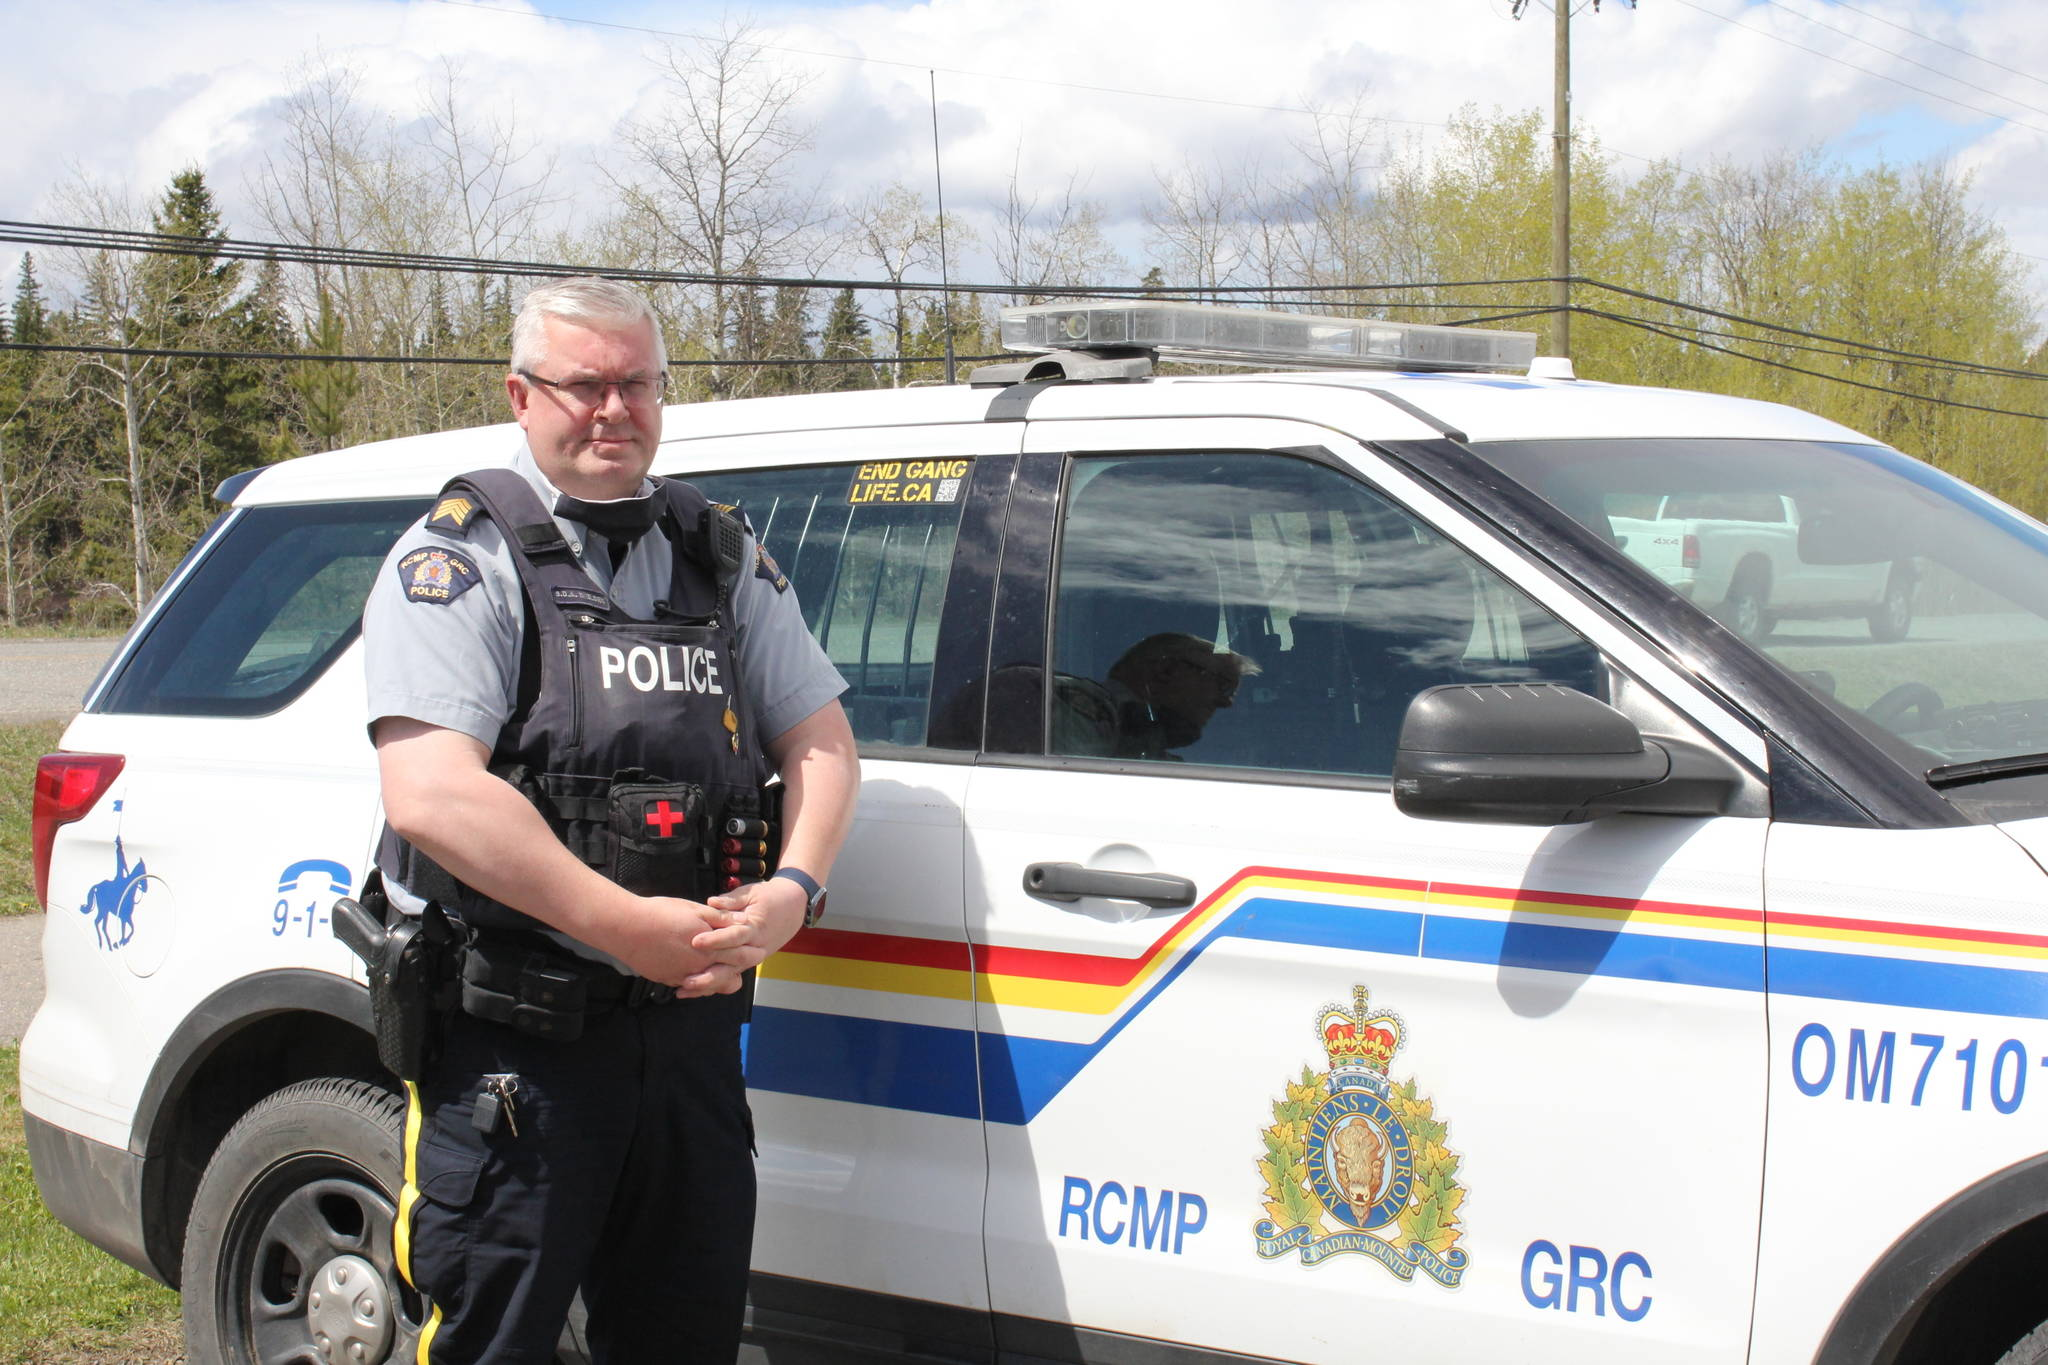 Staff-Sgt. Svend Nielsen, with the 100 Mile House RCMP. (Melissa Smalley - 100 Mile Free Press)